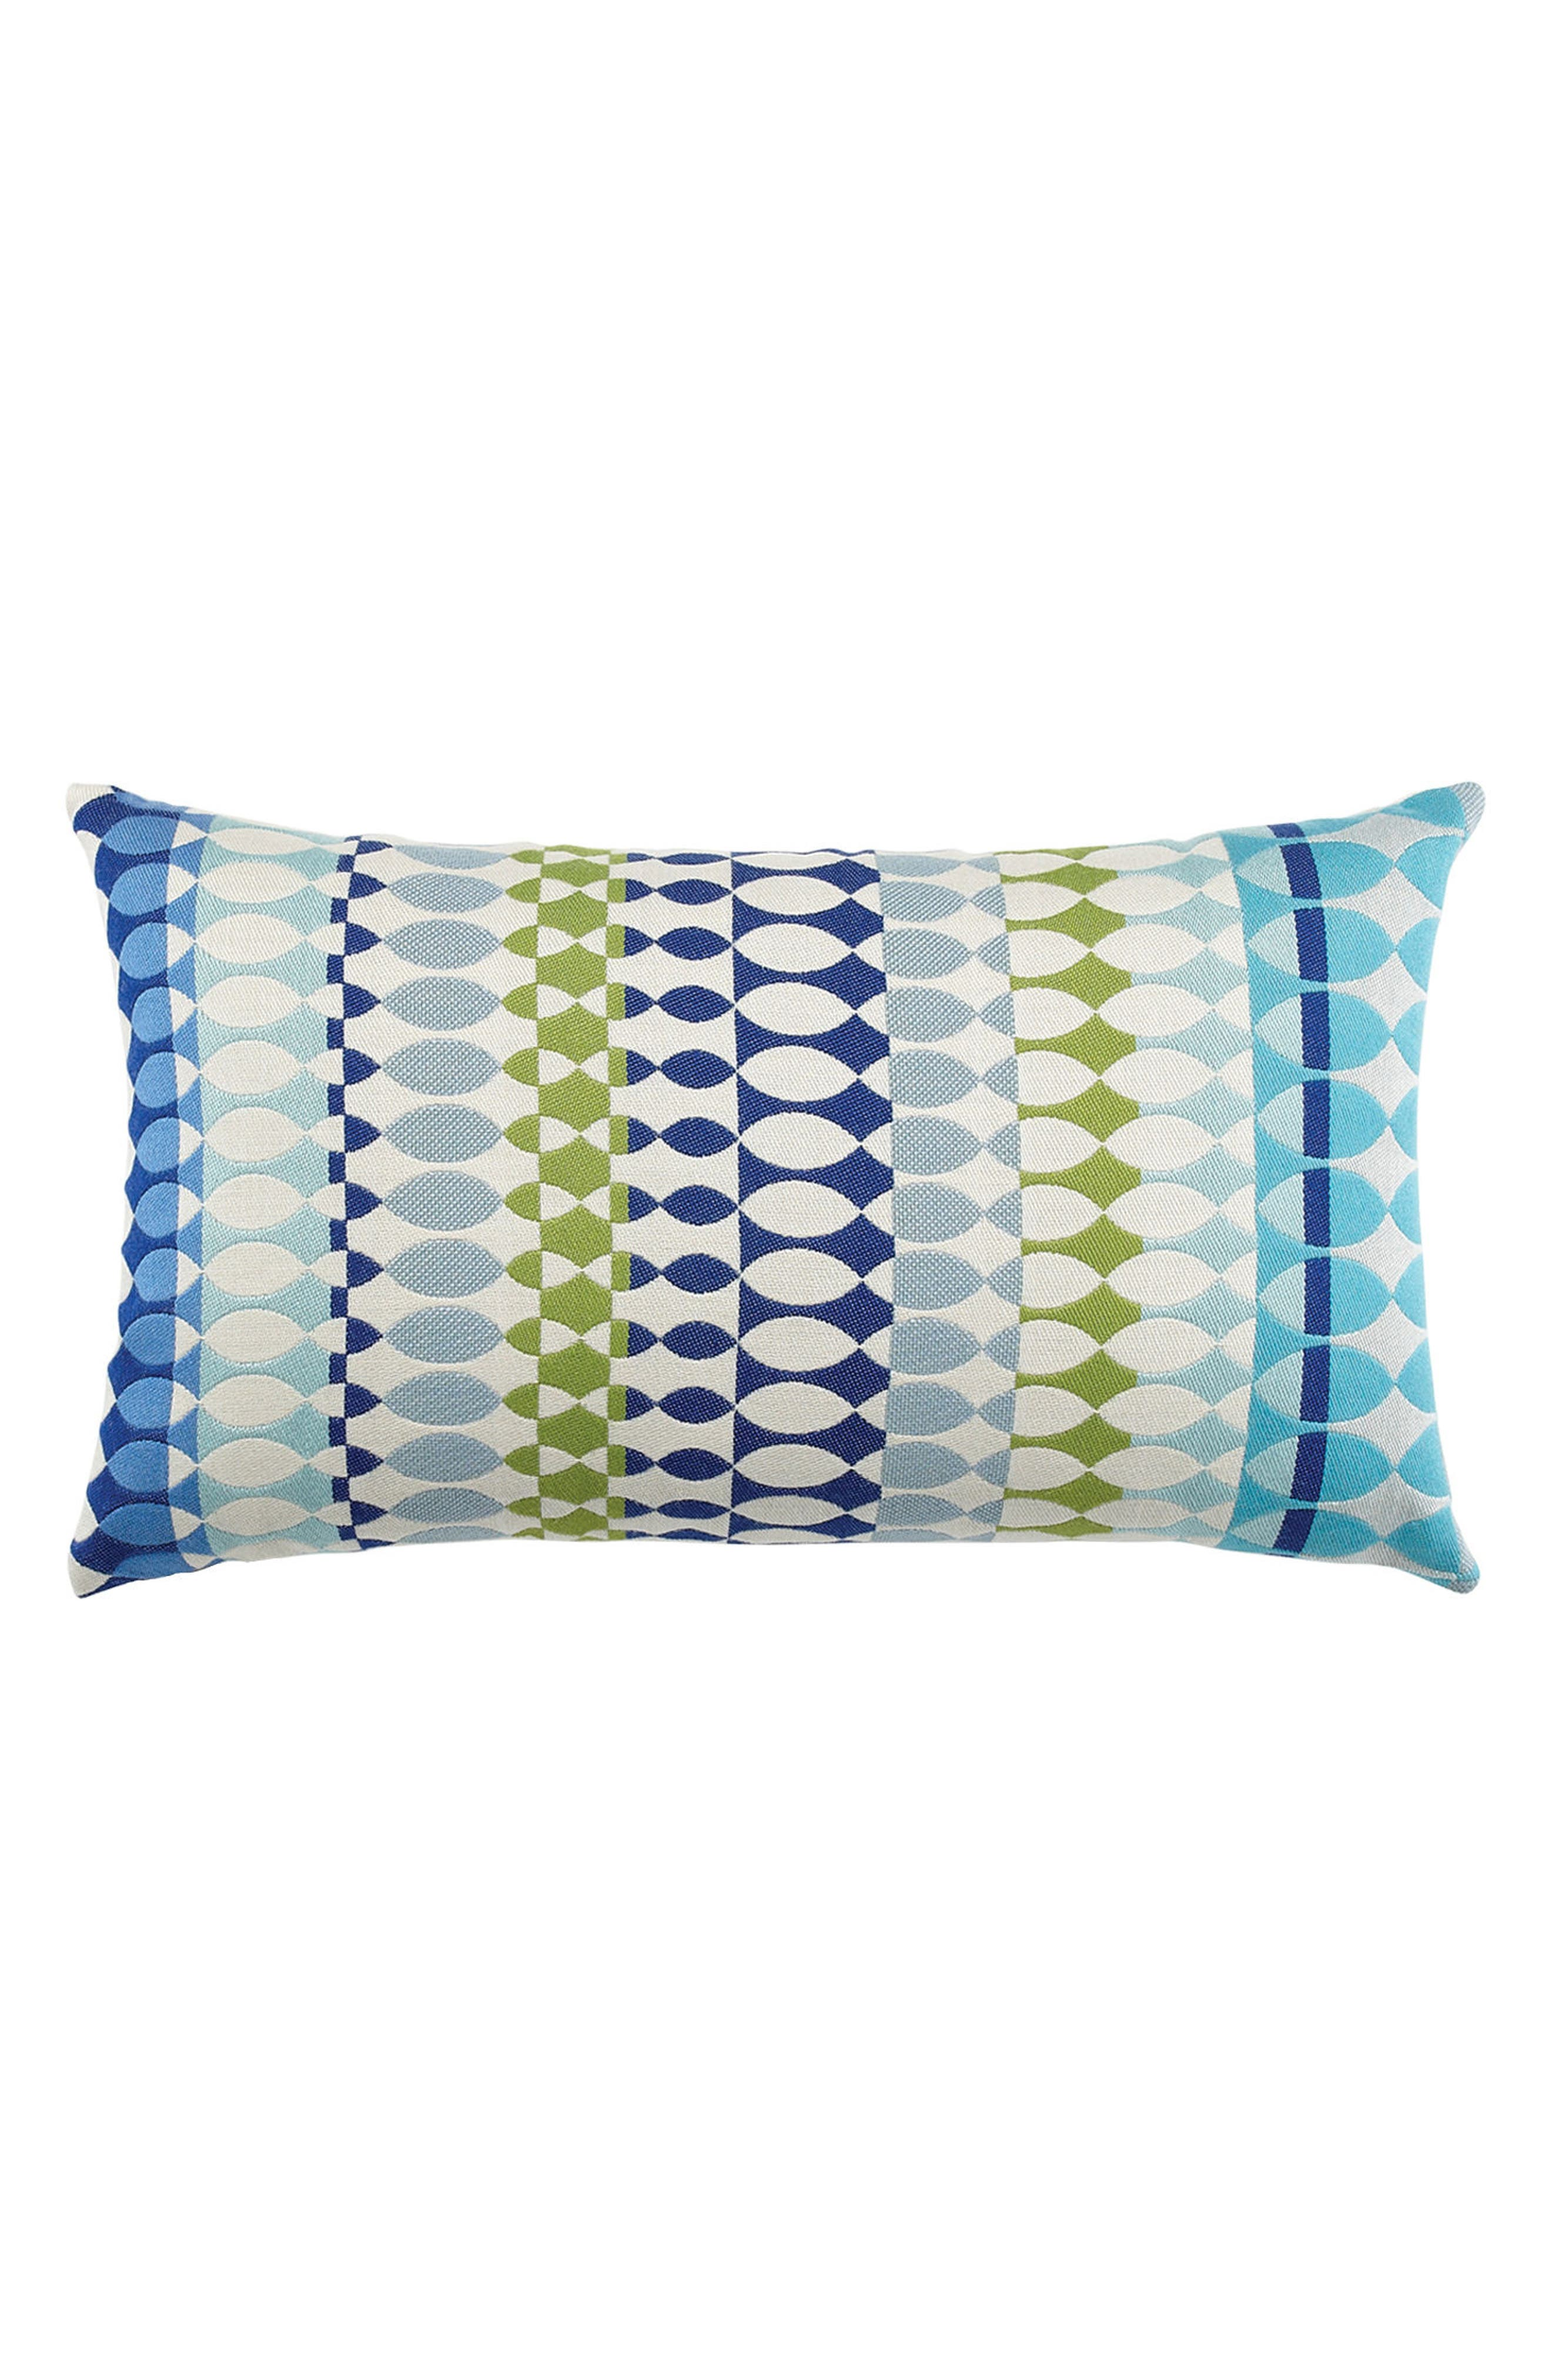 Modern Oval Ocean Lumbar Pillow,                         Main,                         color, Blue Multi